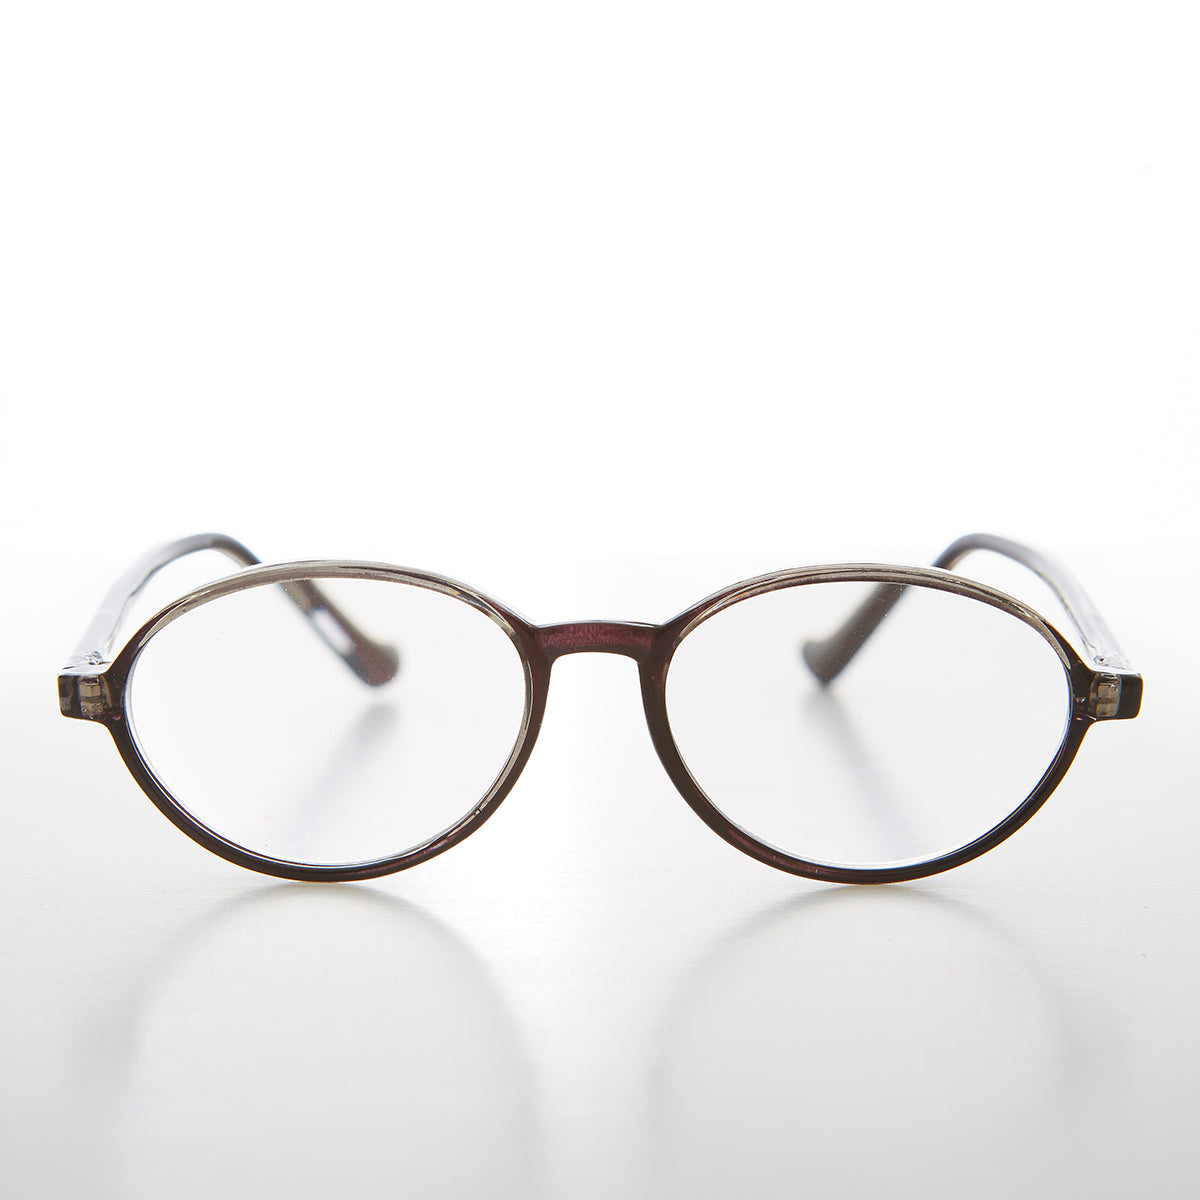 Round Oval Colorful Reading Glasses